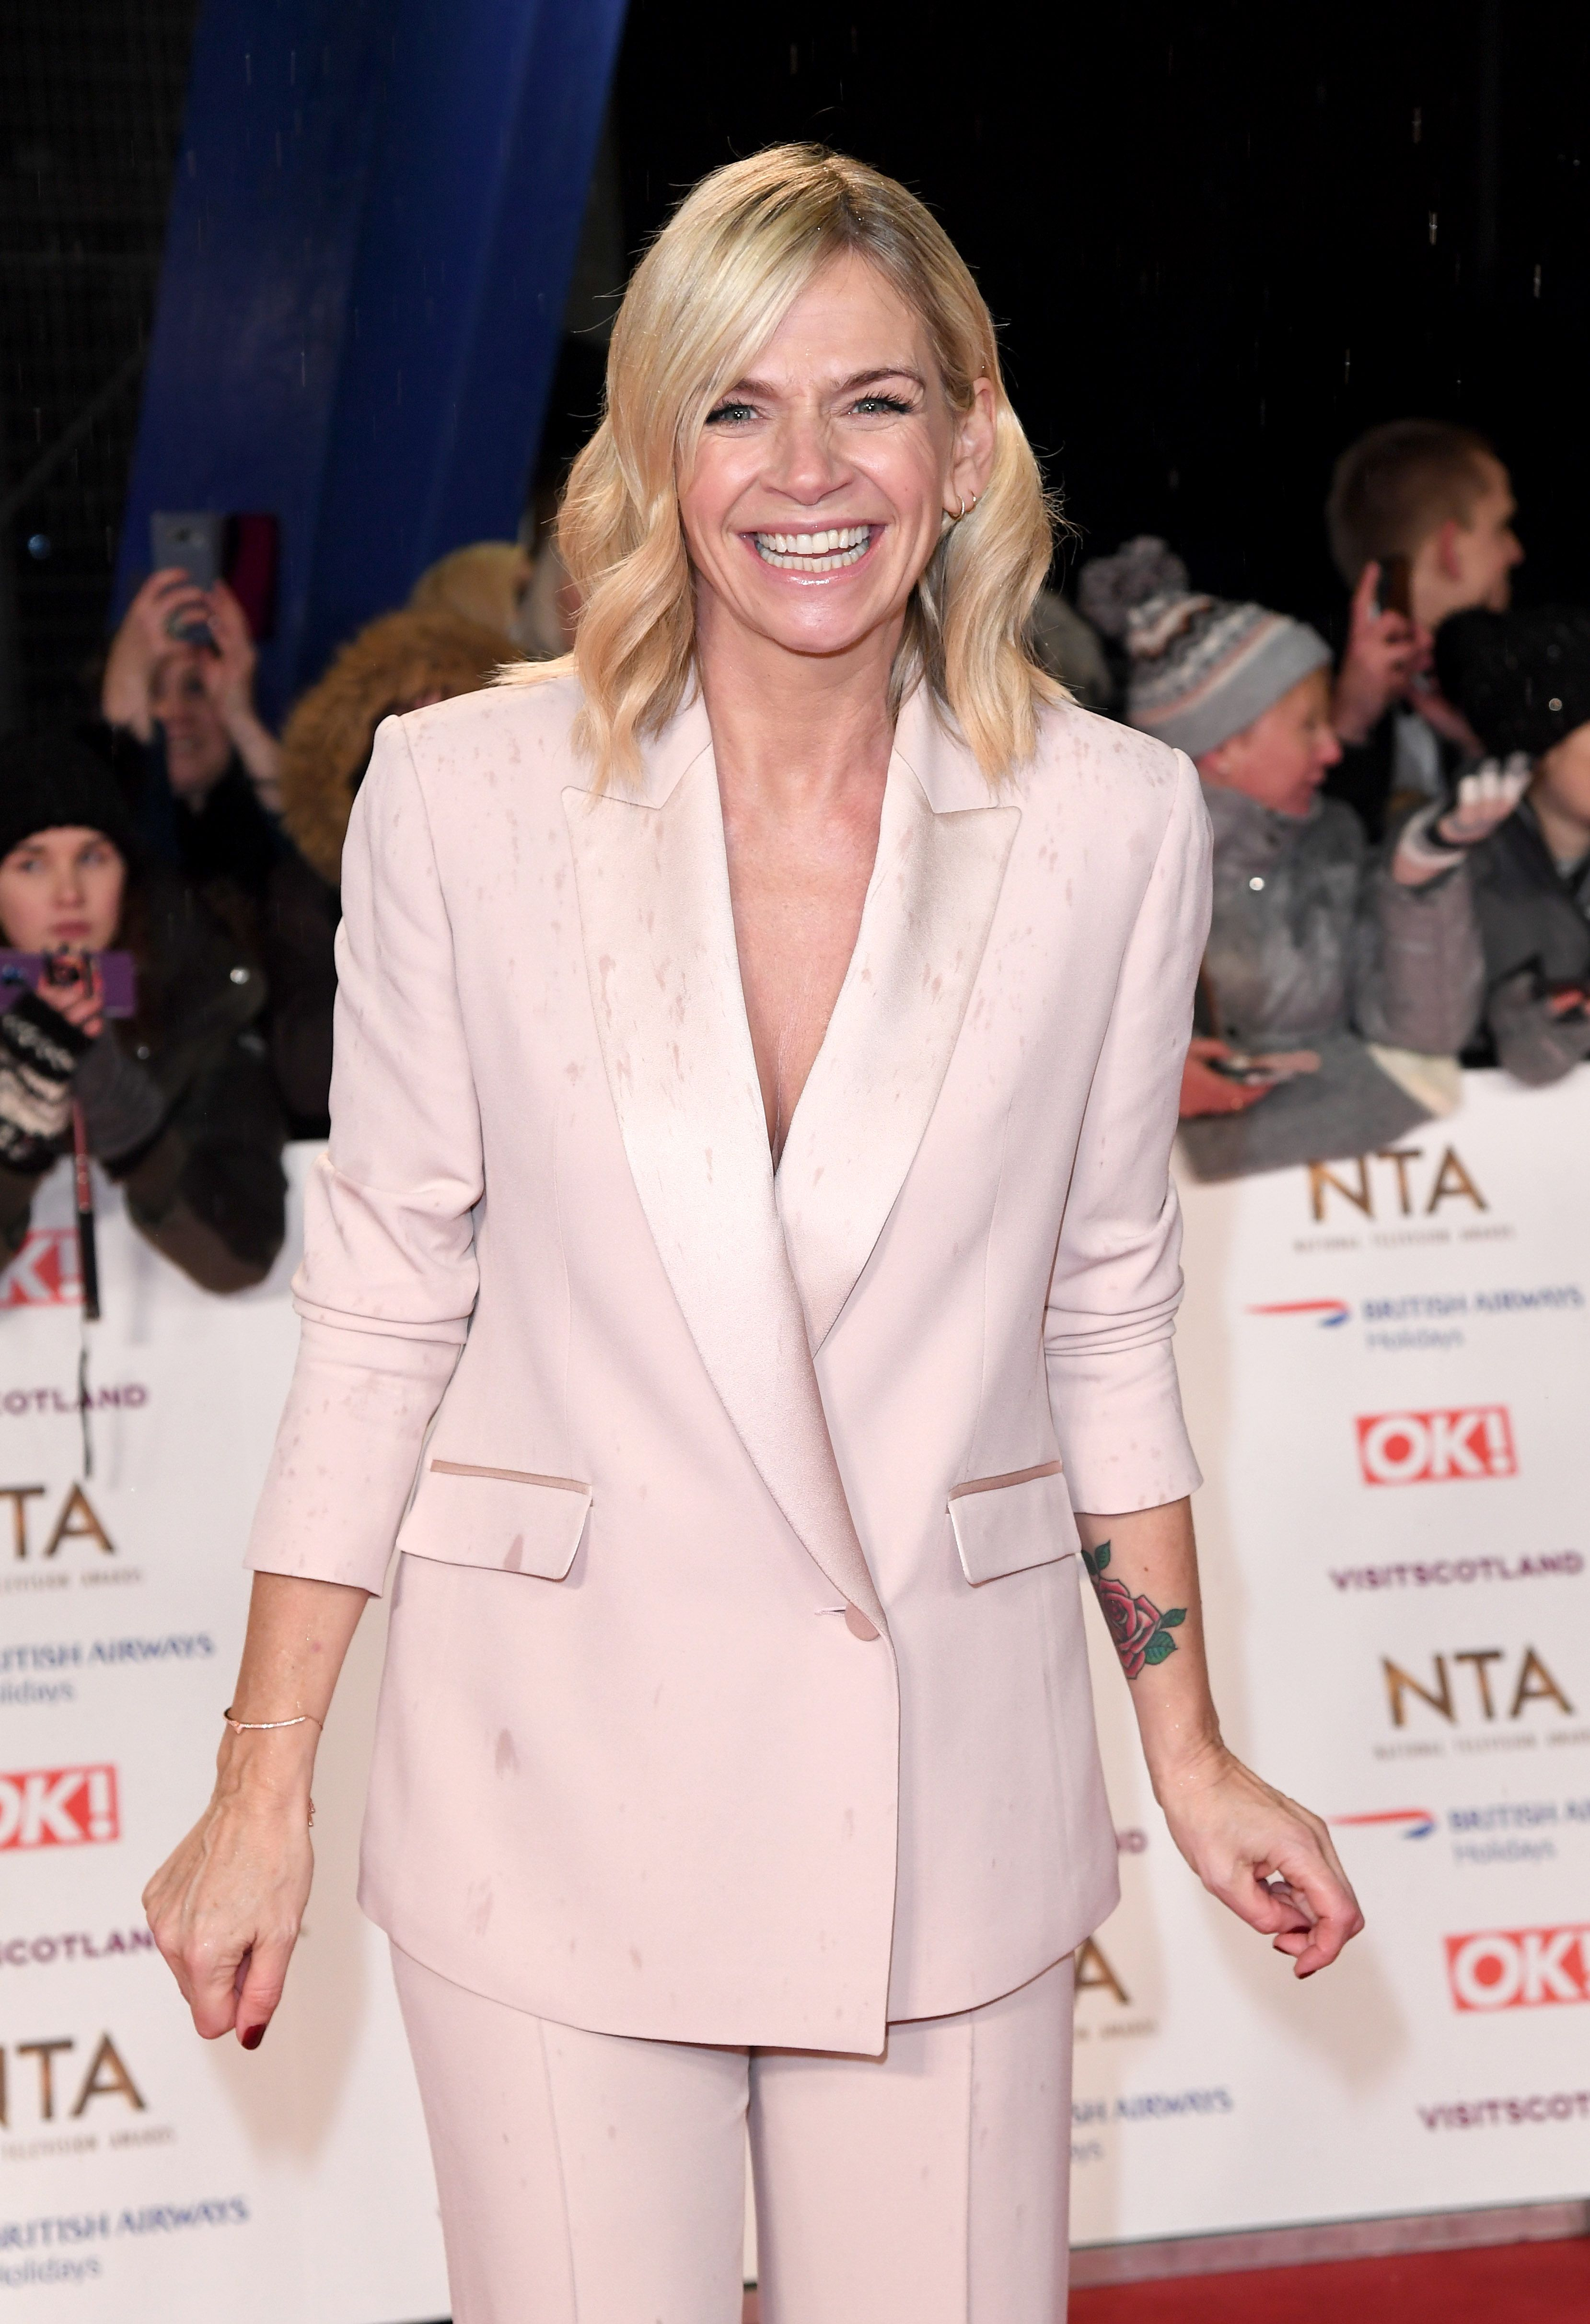 Zoe Ball is contributing to a Chelsea Flower Show garden this year